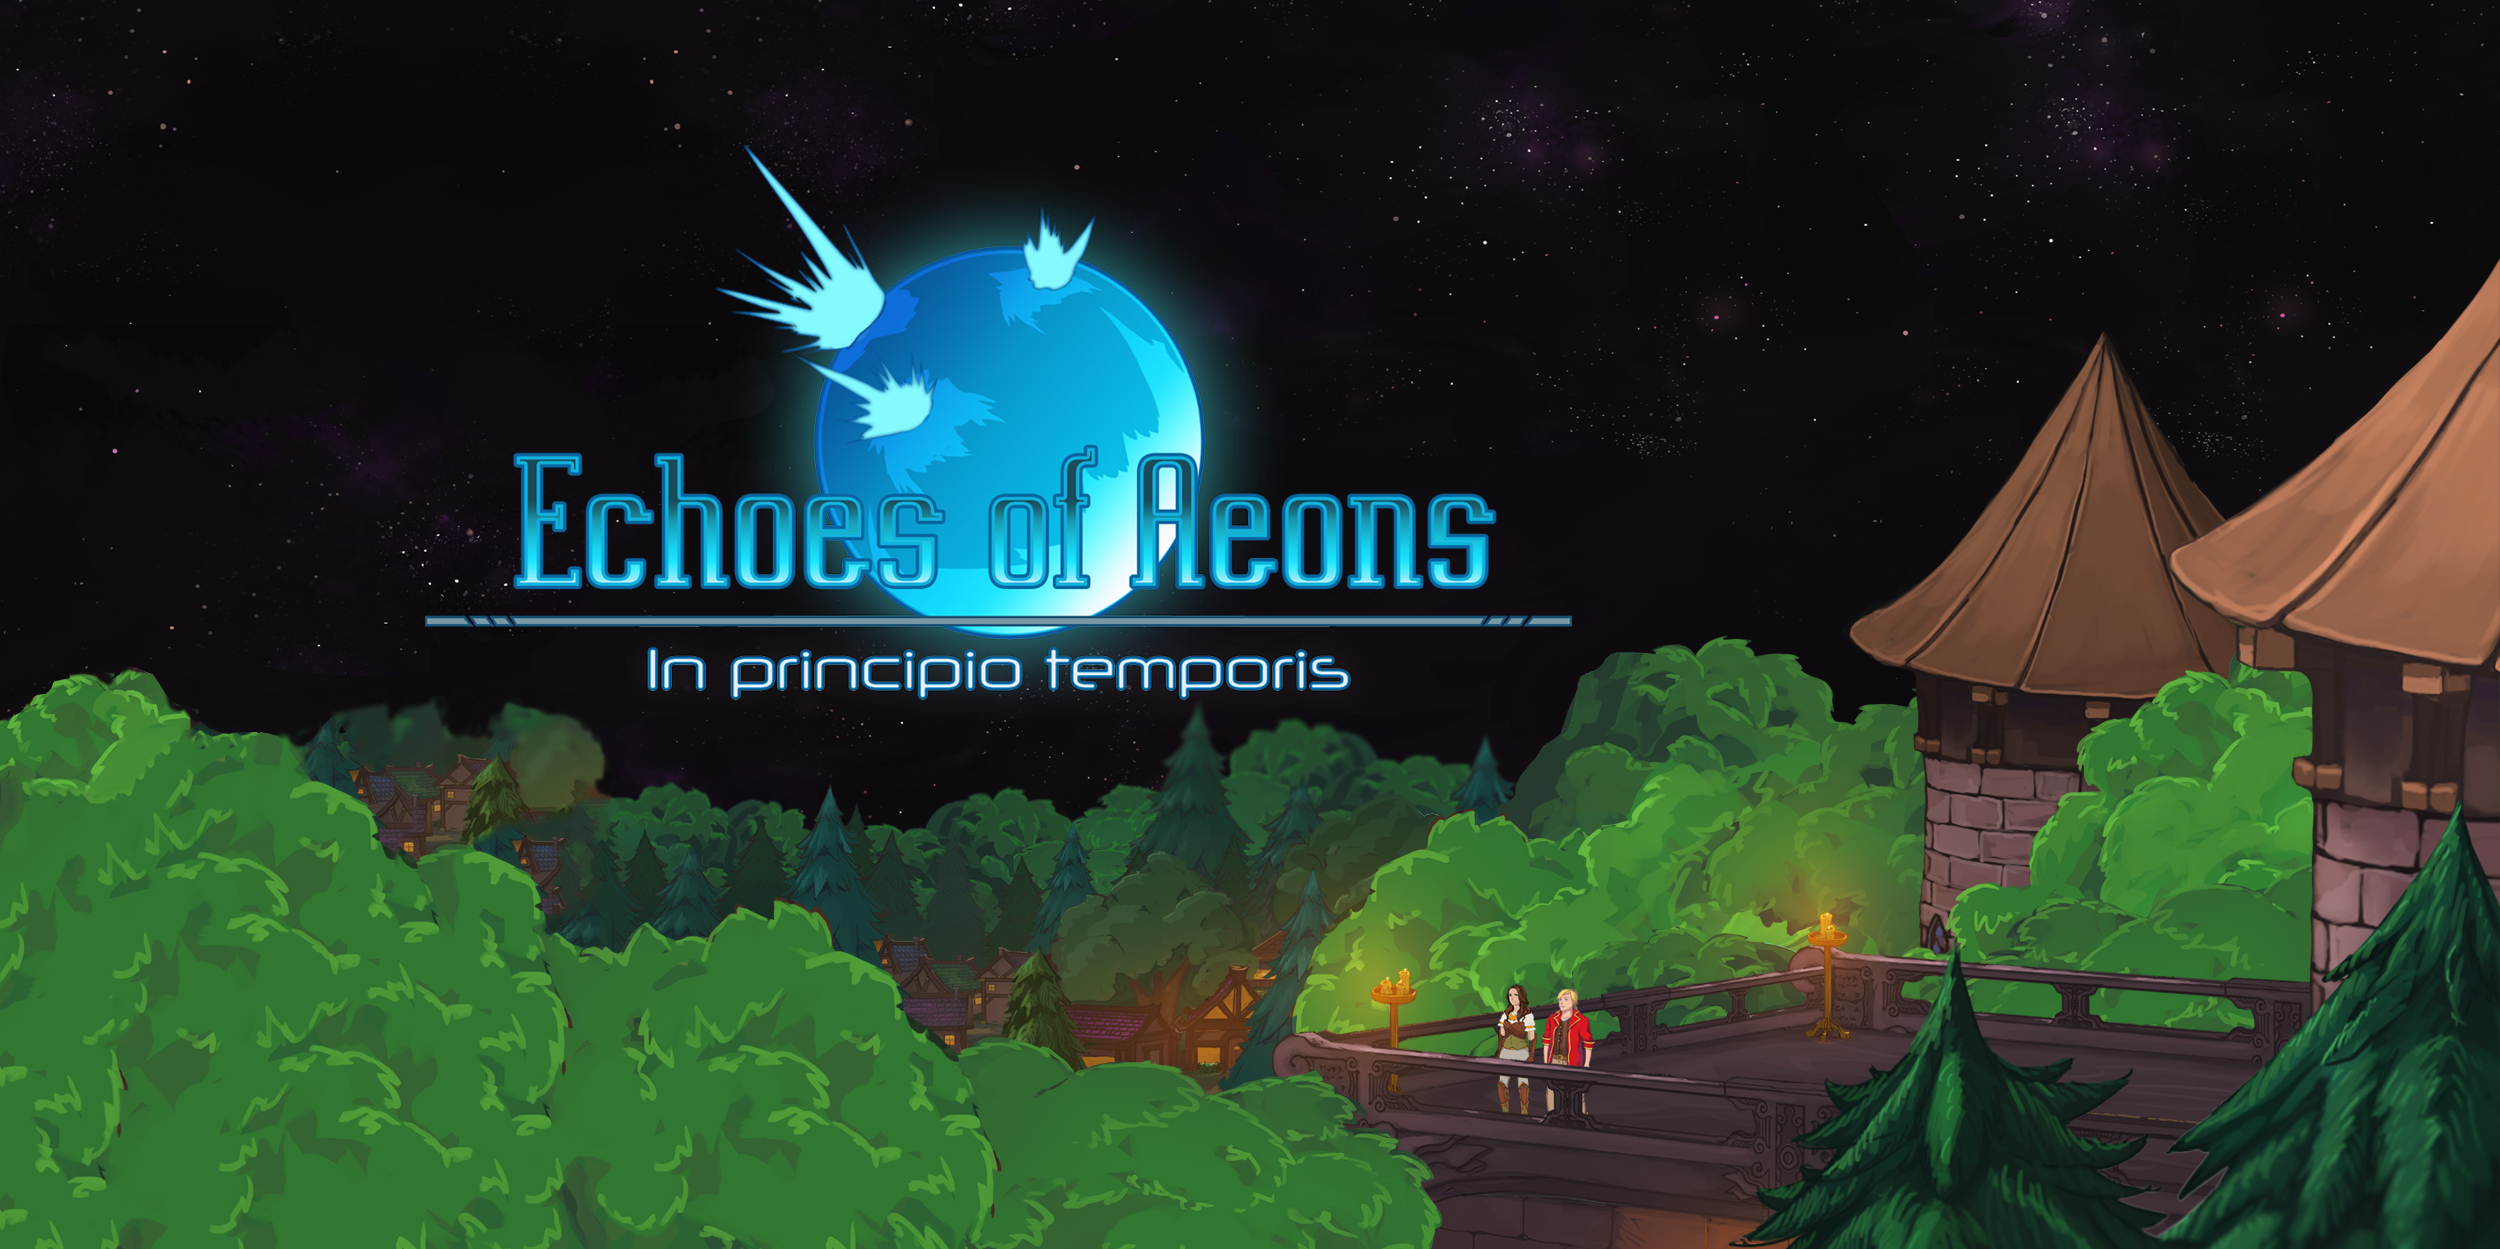 Echoes of Aeons arrives on iOS to deliver an epic RPG experience for genre veterans and newcomers alike